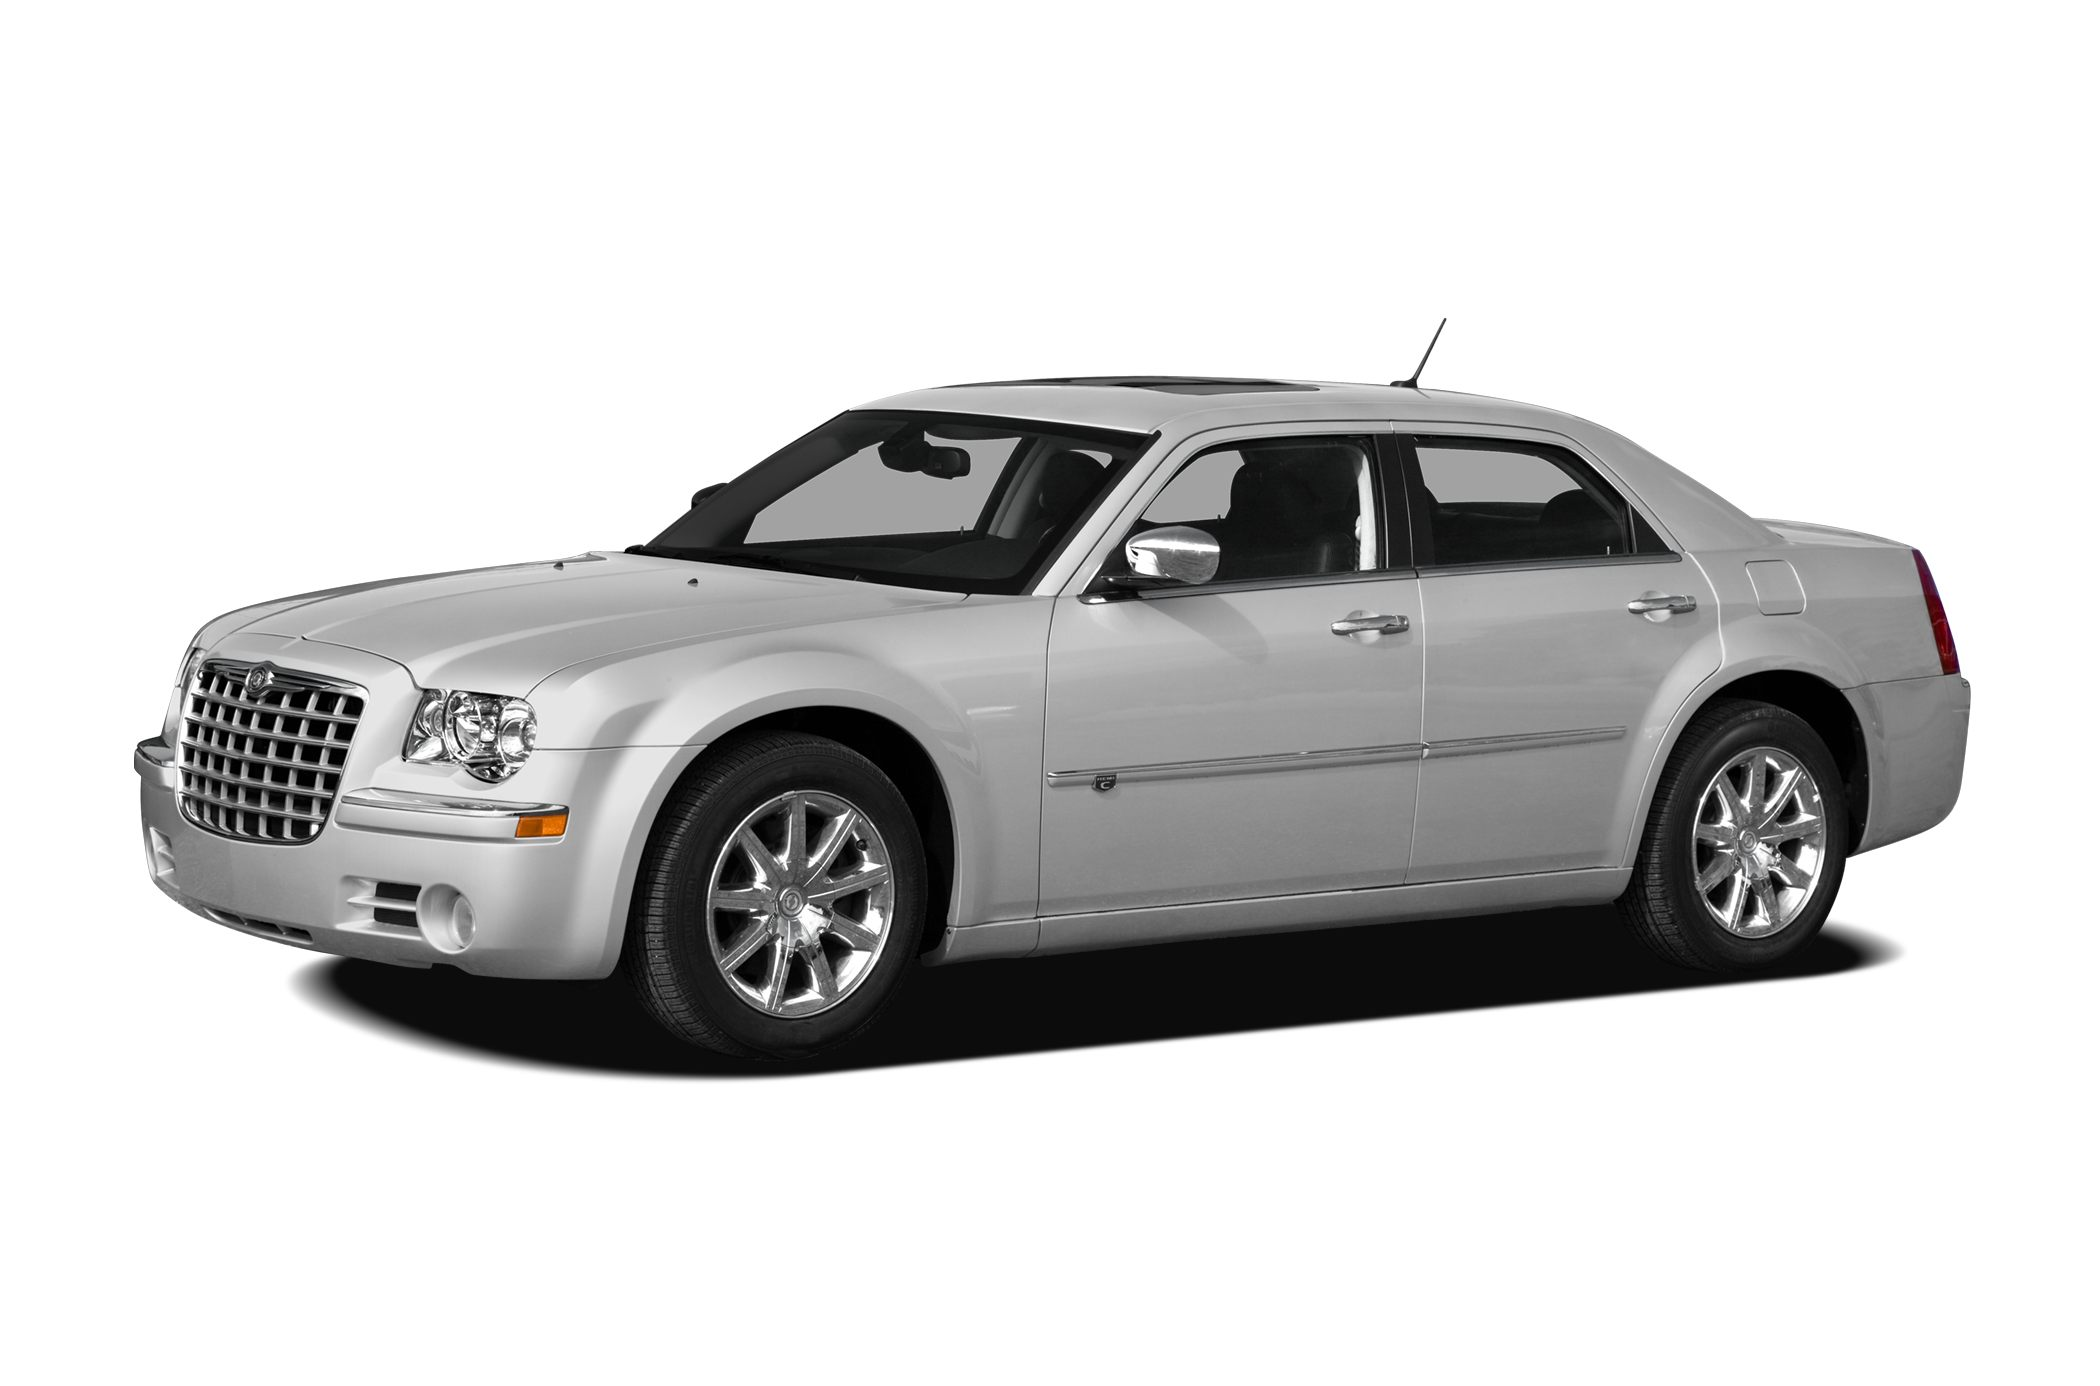 2008 Chrysler 300C Hemi Sedan for sale in Cathedral City for $19,900 with 64,009 miles.